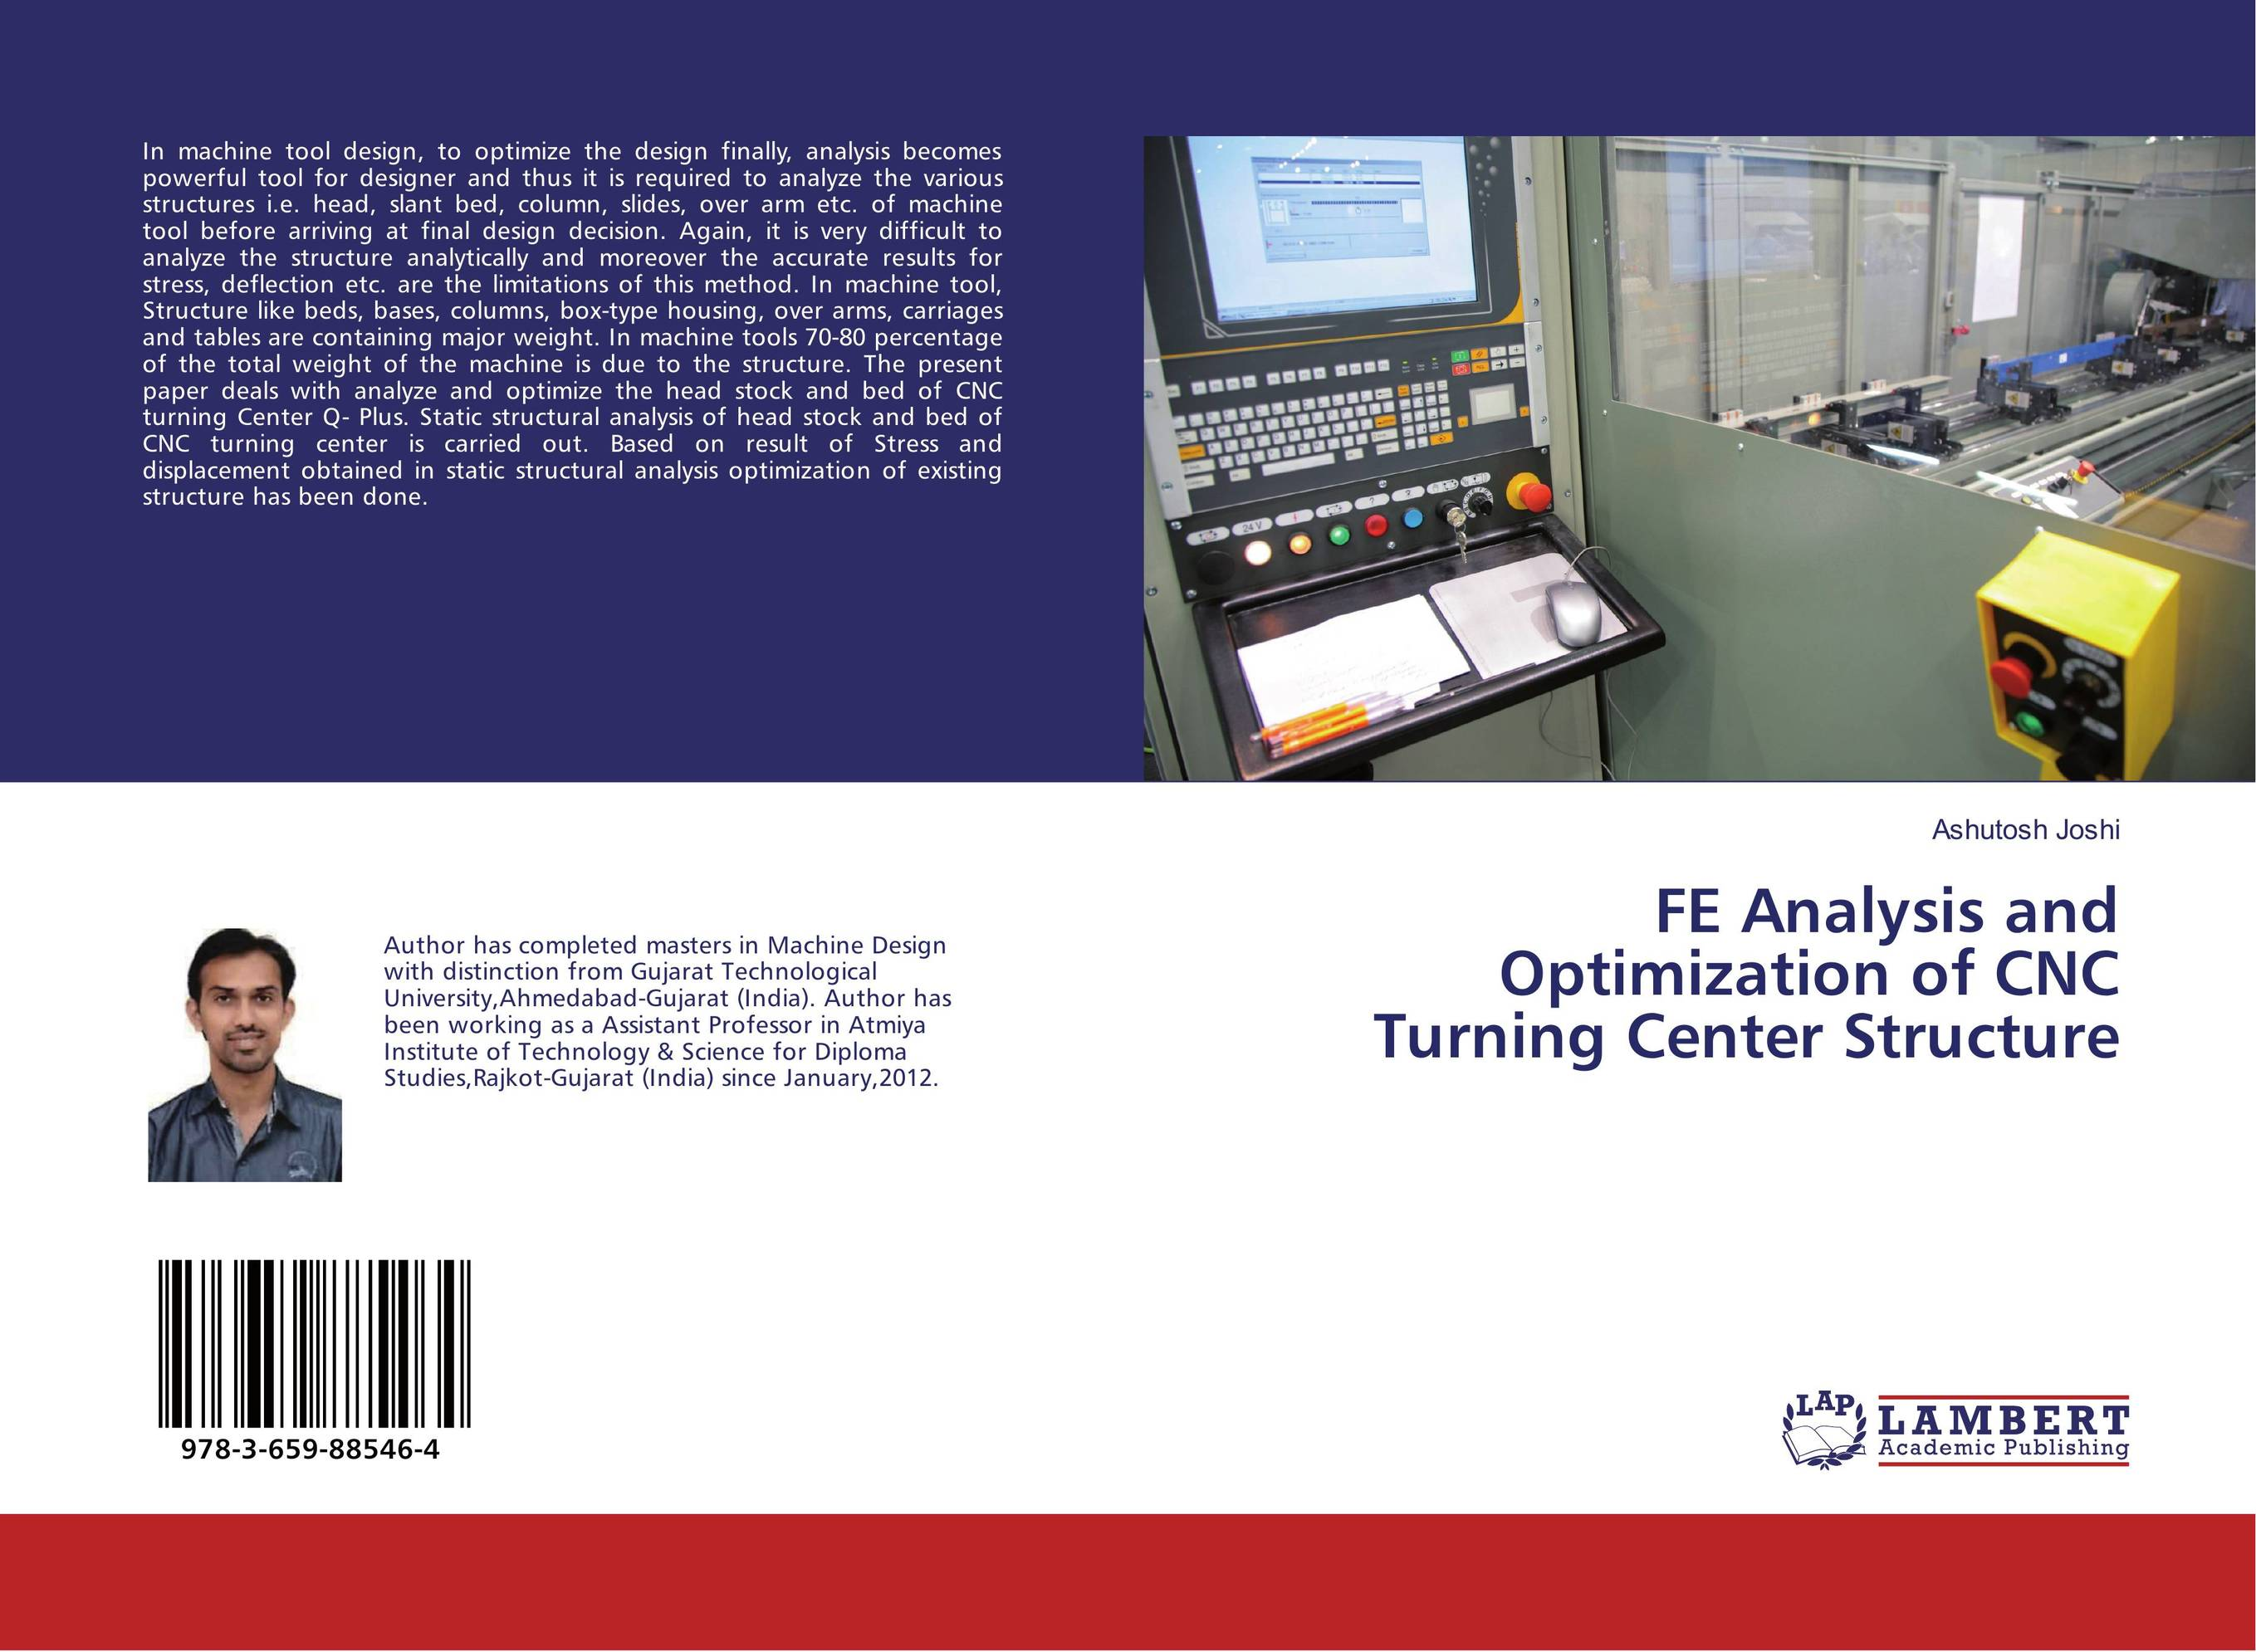 FE Analysis and Optimization of CNC Turning Center Structure купить